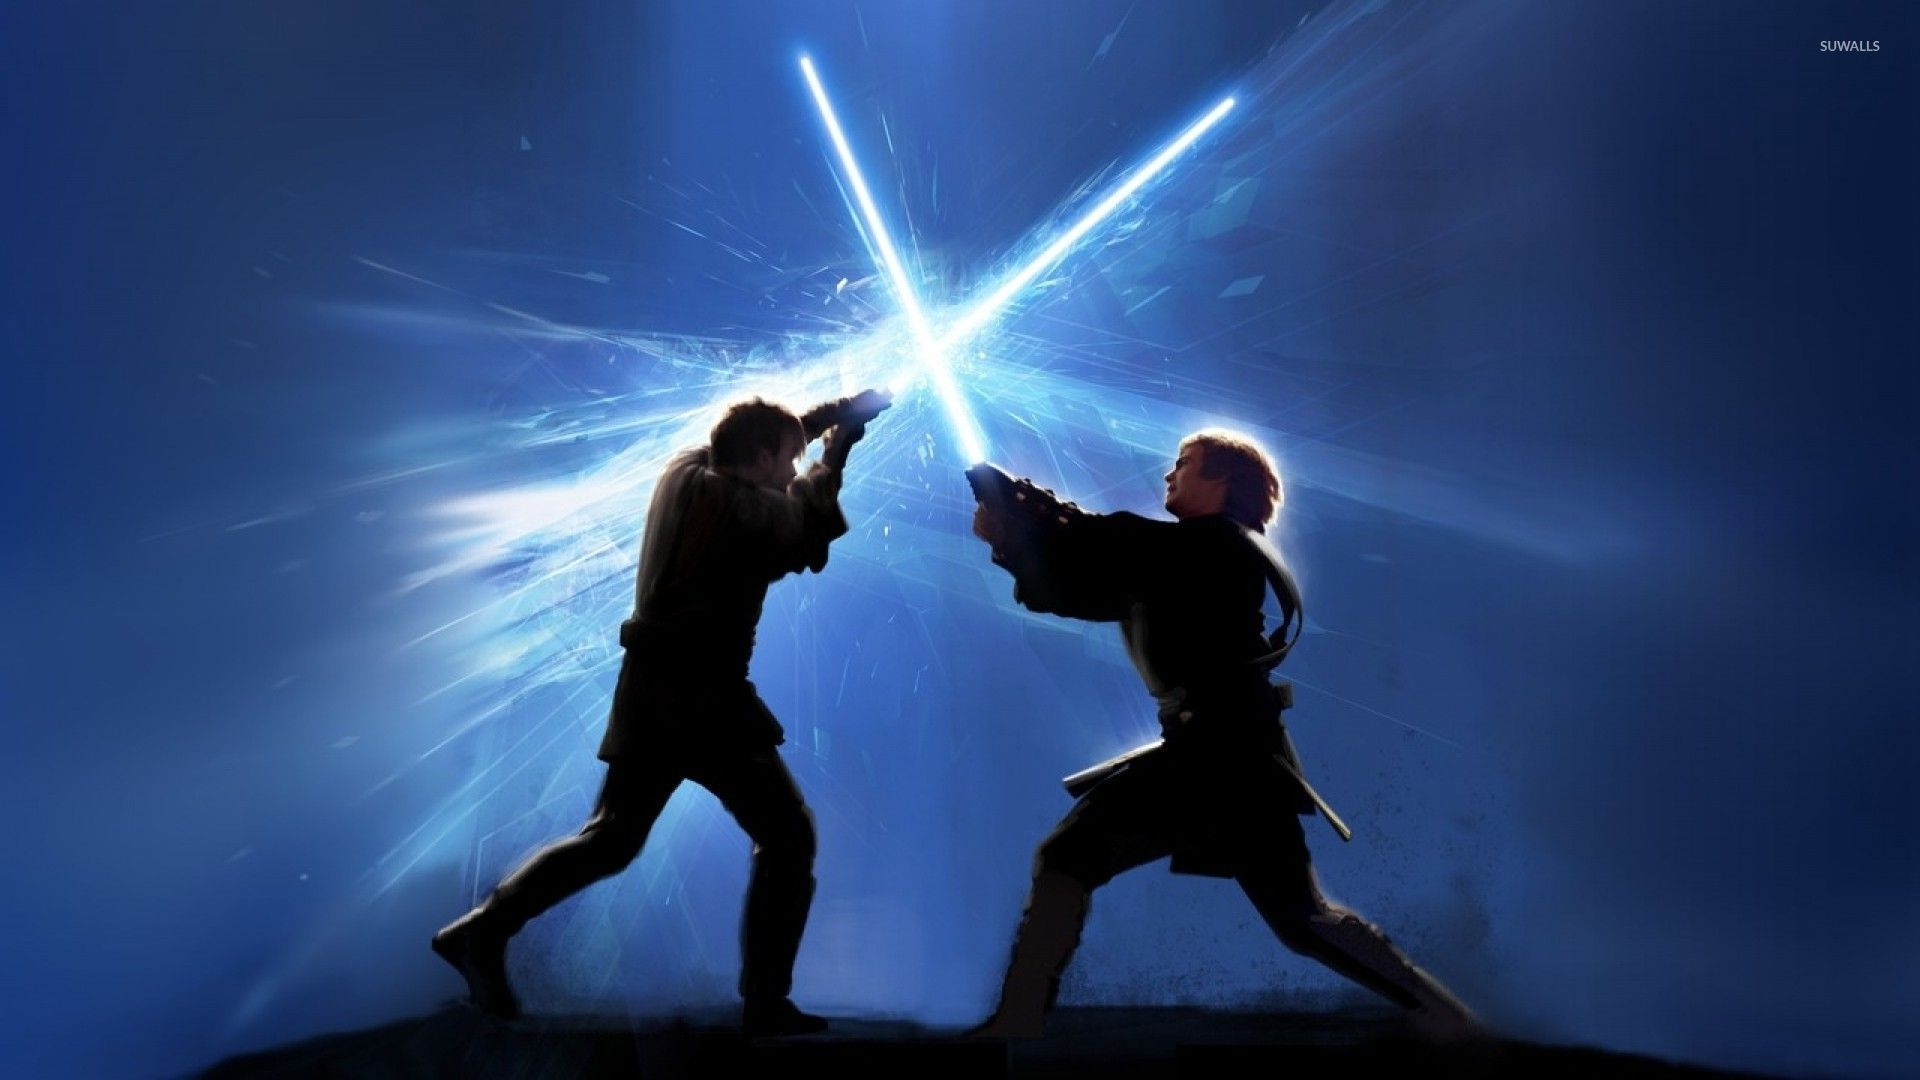 Jedi Fight Wallpaper Movie Wallpapers 29366